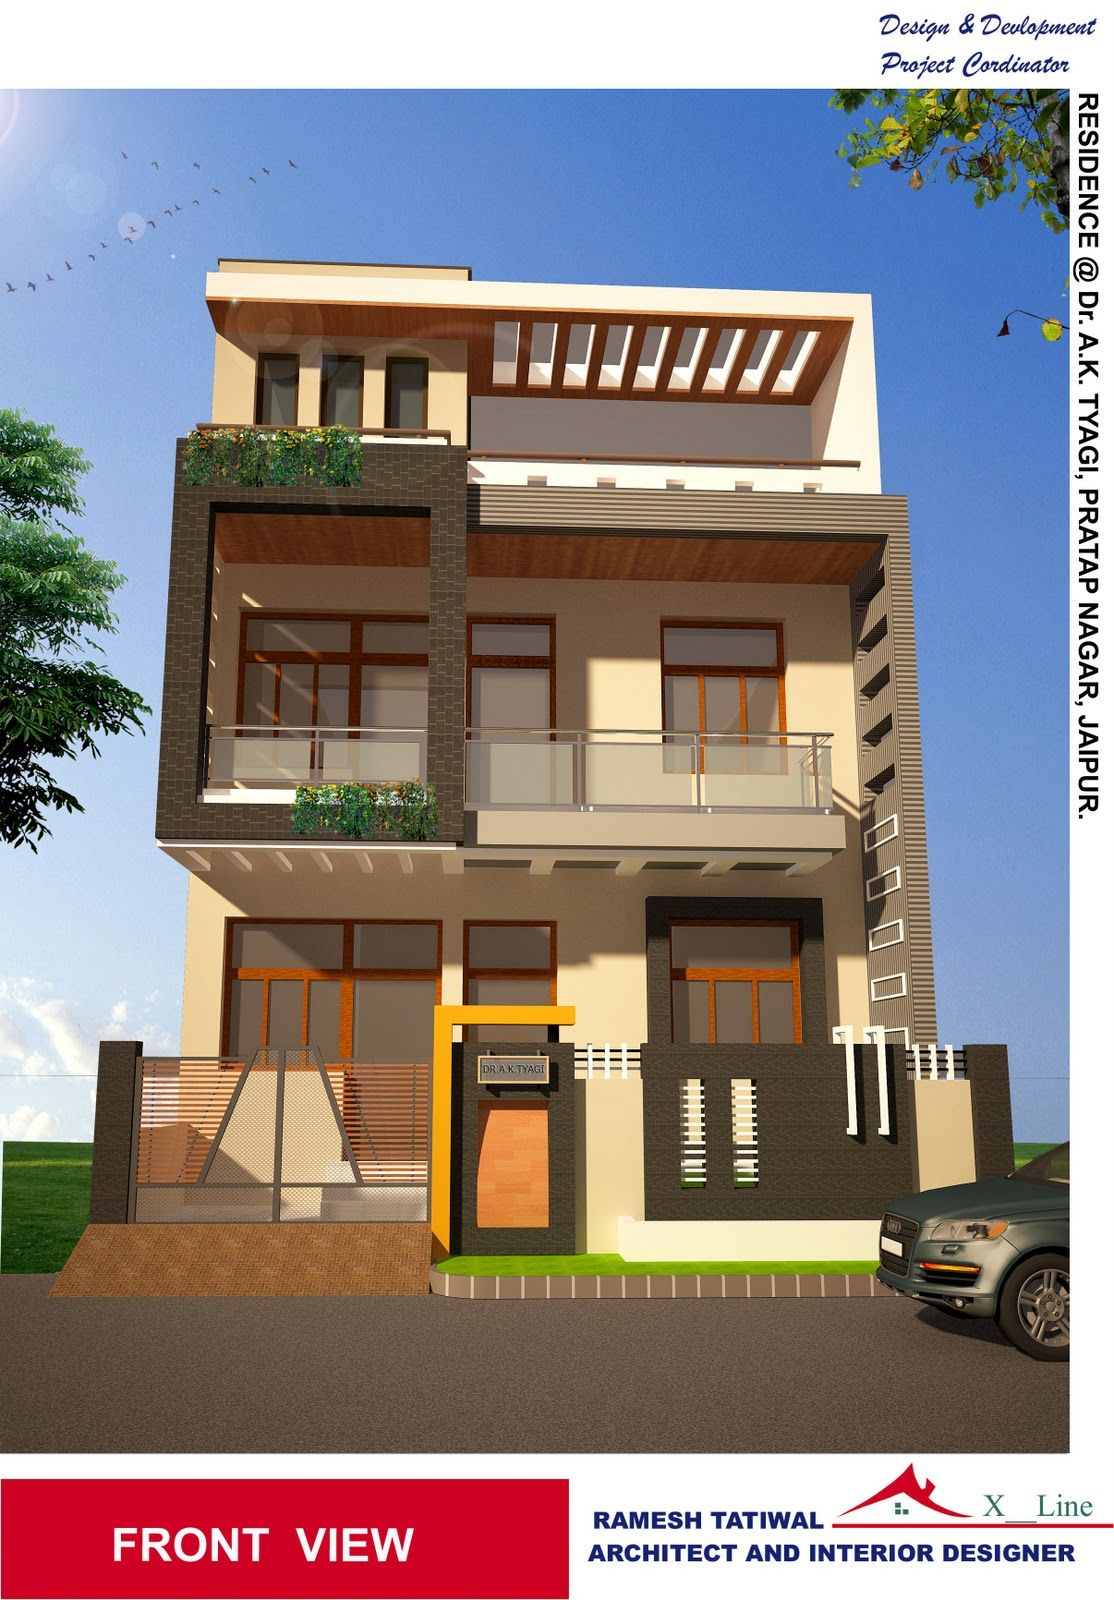 Housedesigns modern indian home architecture design from for Architecture design for home in rajkot